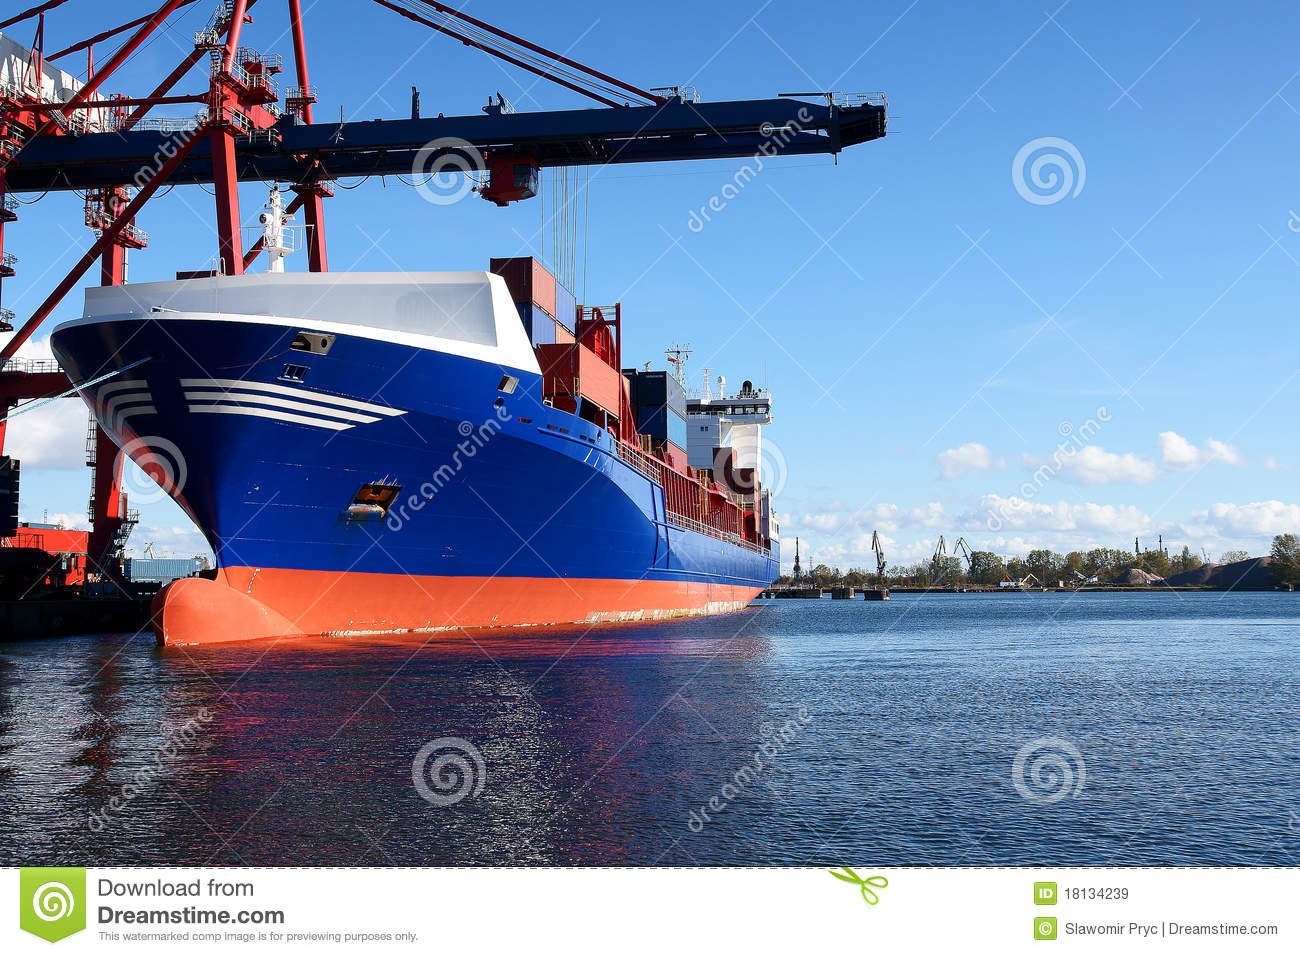 Gedokt lading of containerschip